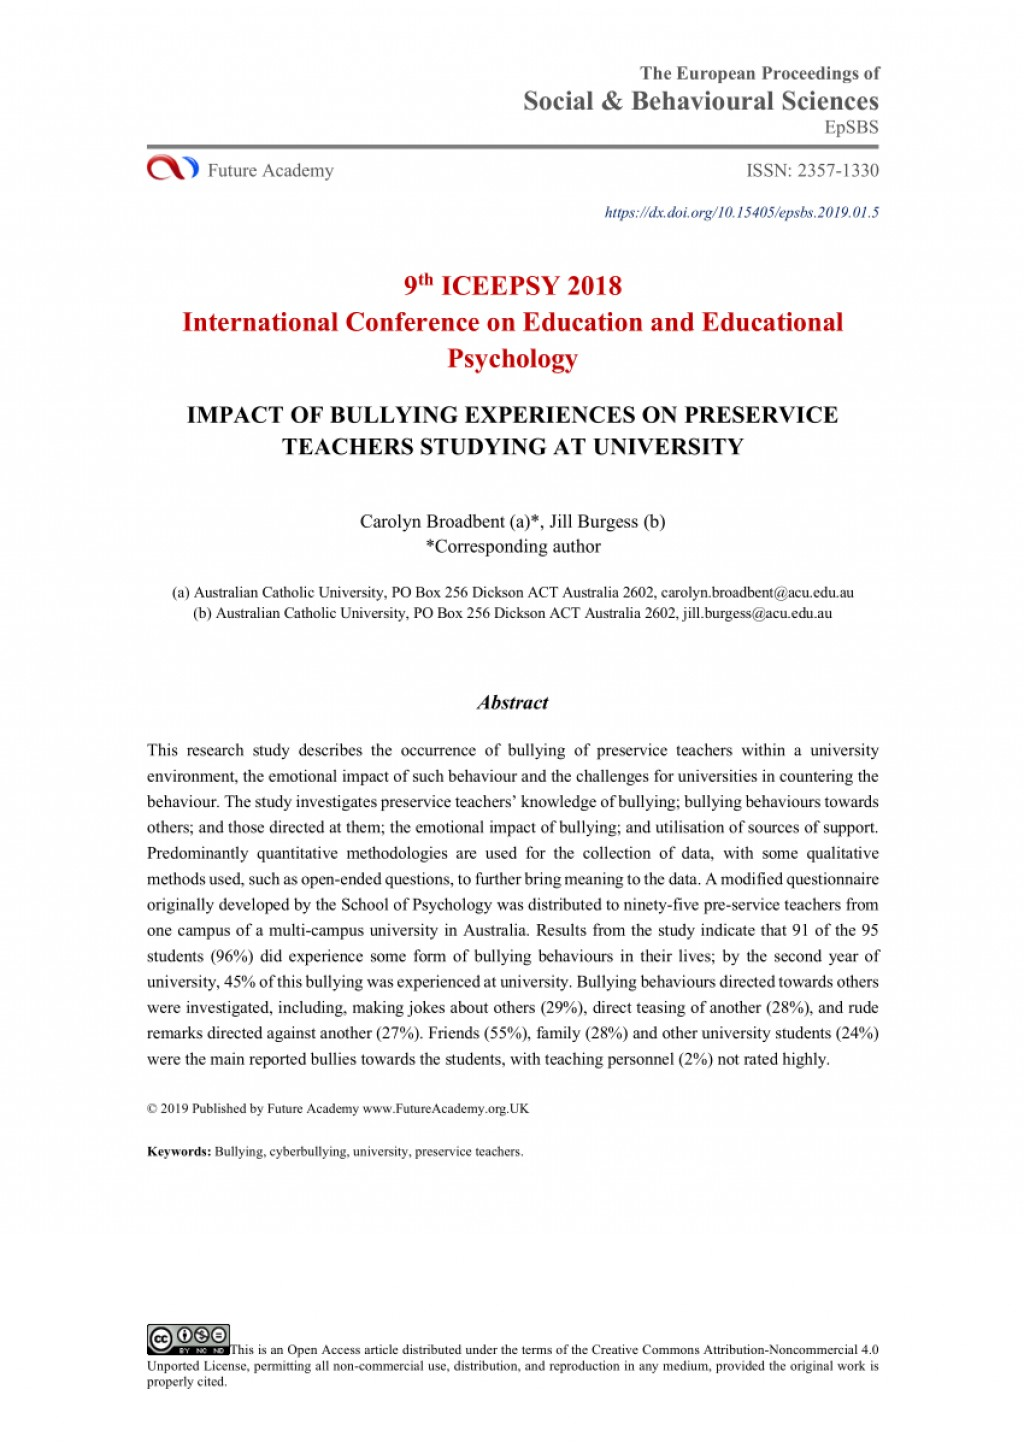 005 Research Paper Psychological Effects Of Bullying Breathtaking Large